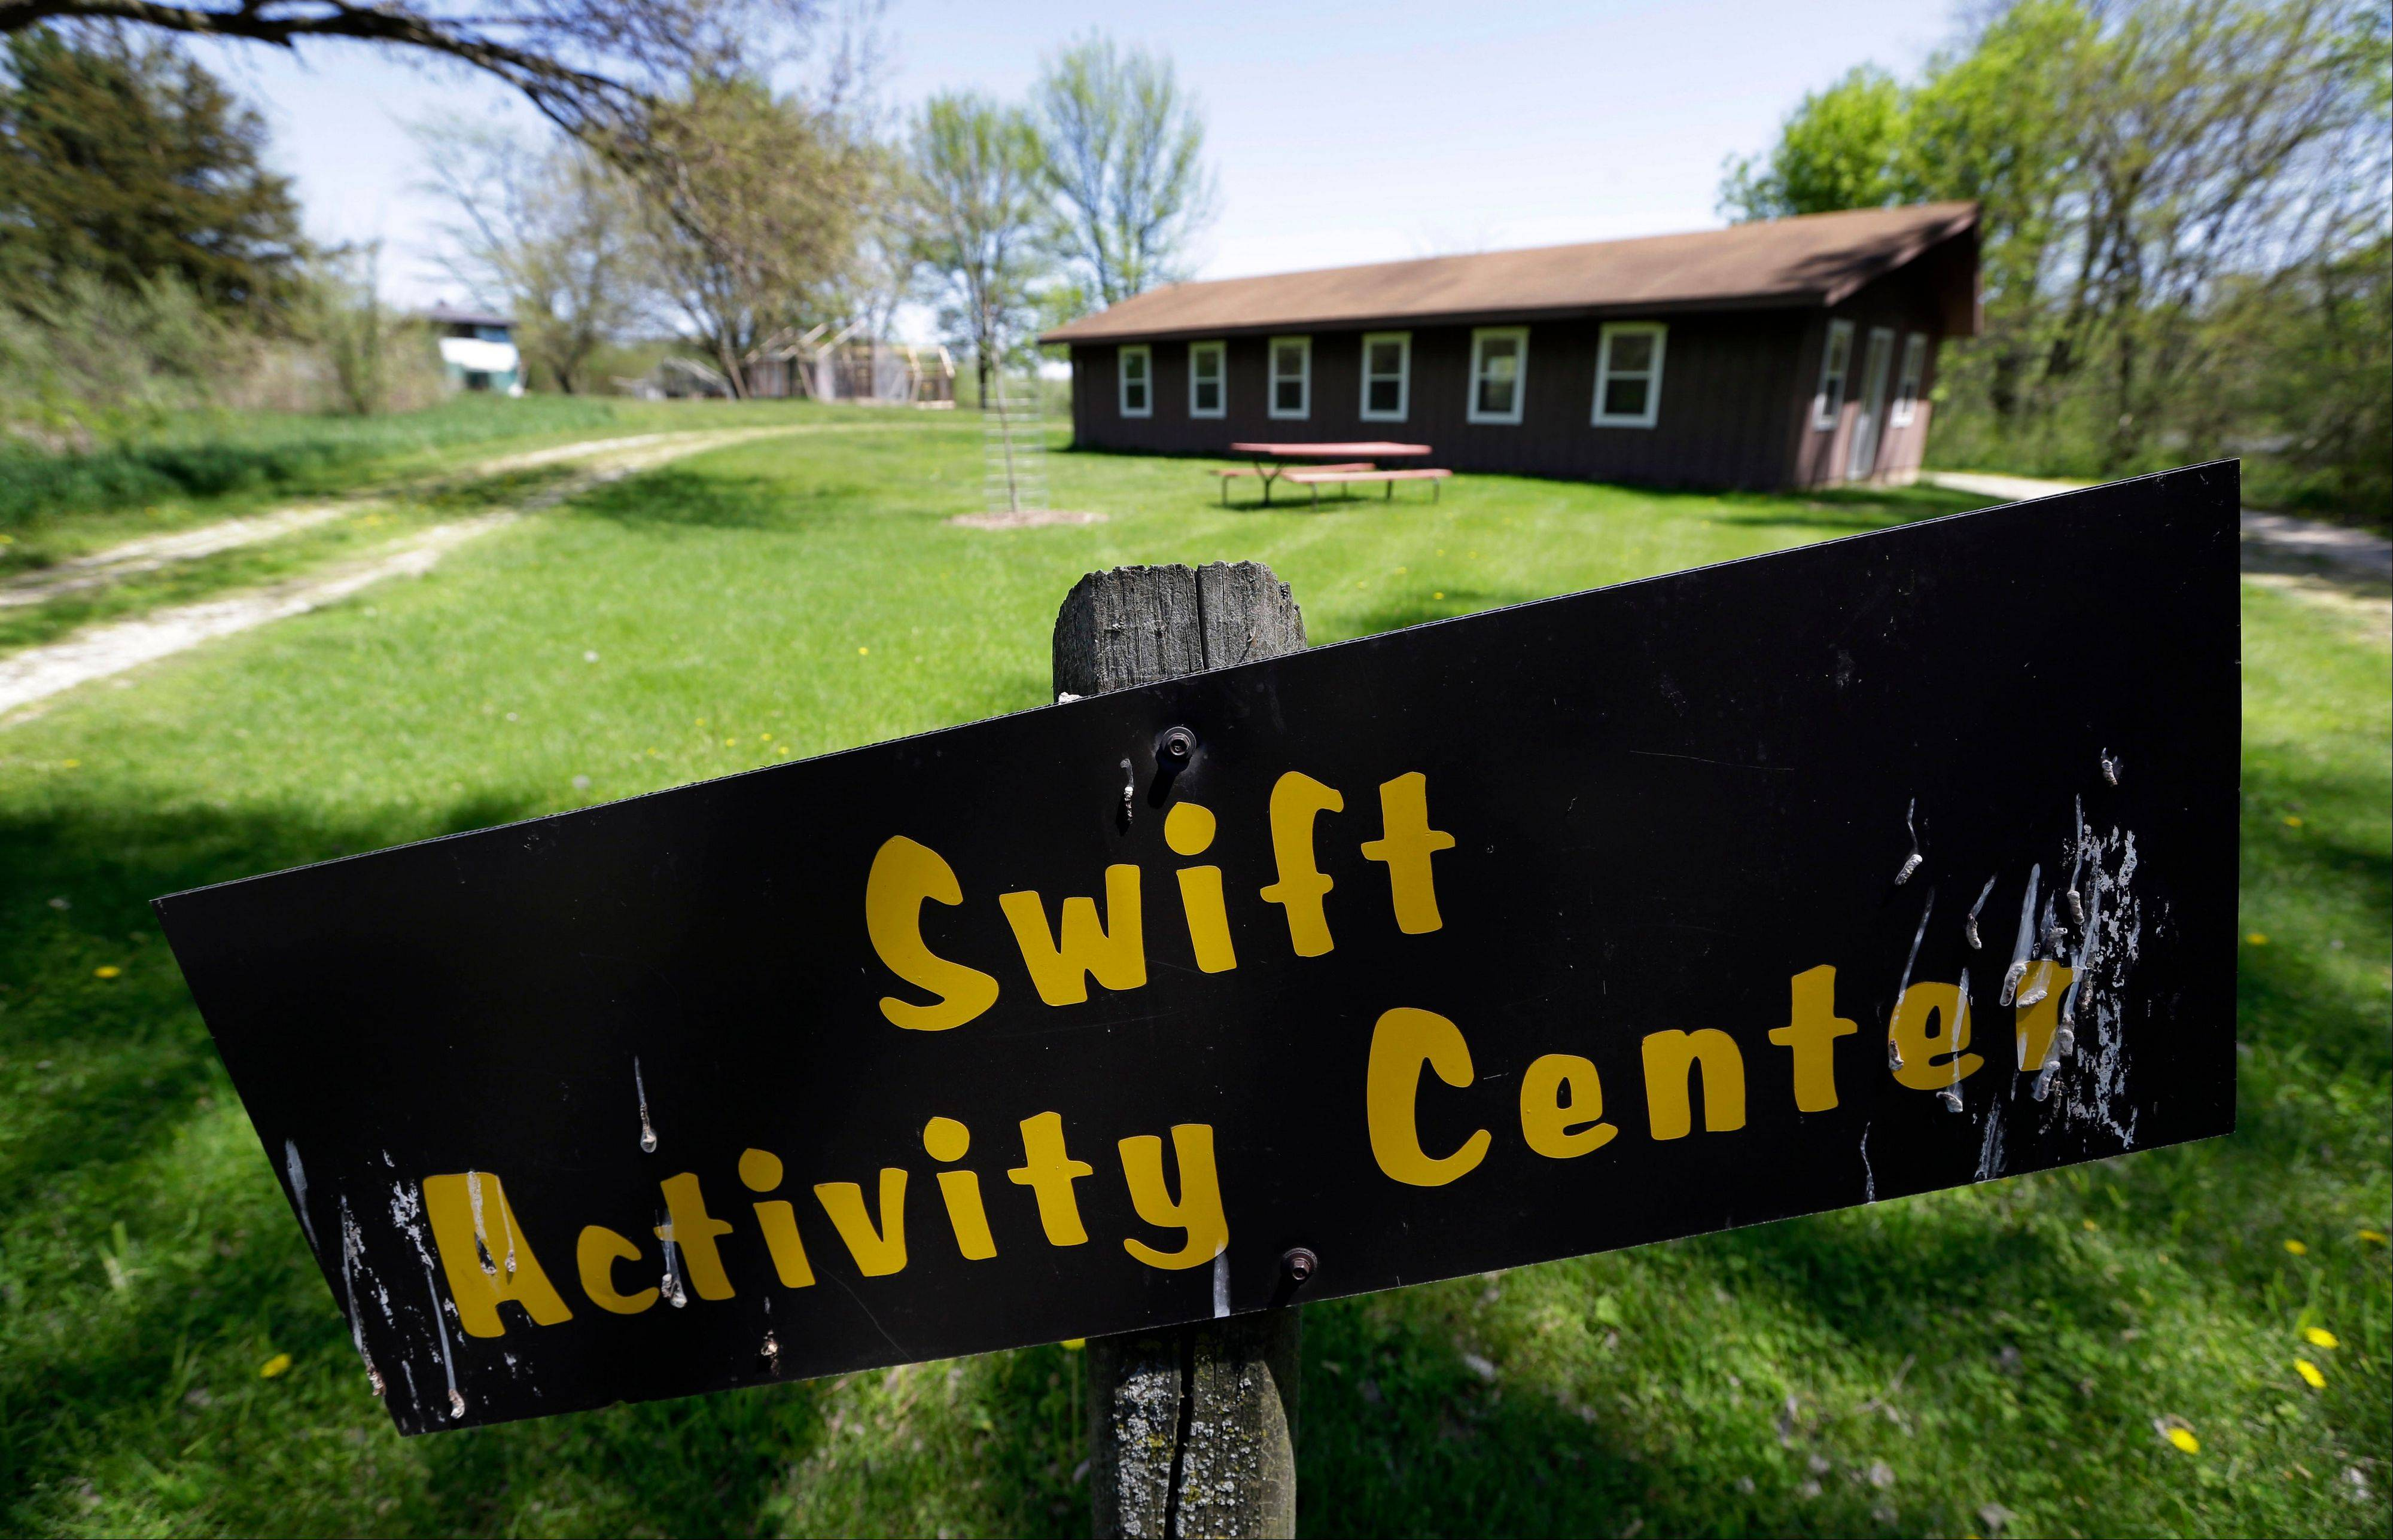 This Tuesday, May 14, 2013 photo shows the Swift Activity Center at the Camp Conestoga Girls Scouts camp in New Liberty, Iowa. In an effort to save money, Girl Scout councils across the country are making proposals that would have been unthinkable a generation ago: selling summer camps that date back to the 1950s.